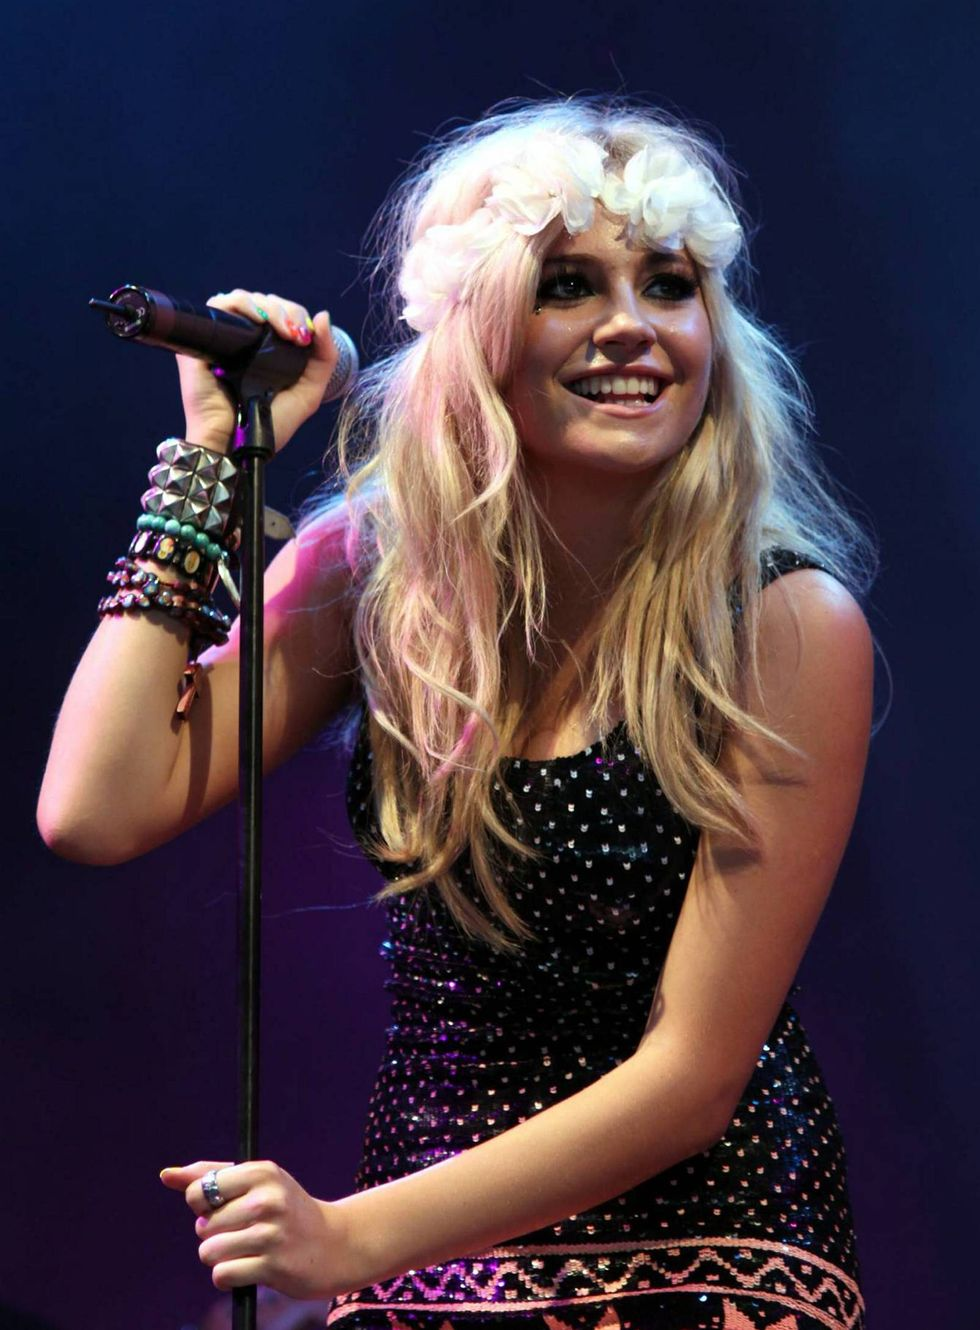 pixie-lott-at-the-v-festival-at-hylands-park-in-chelmsford-01